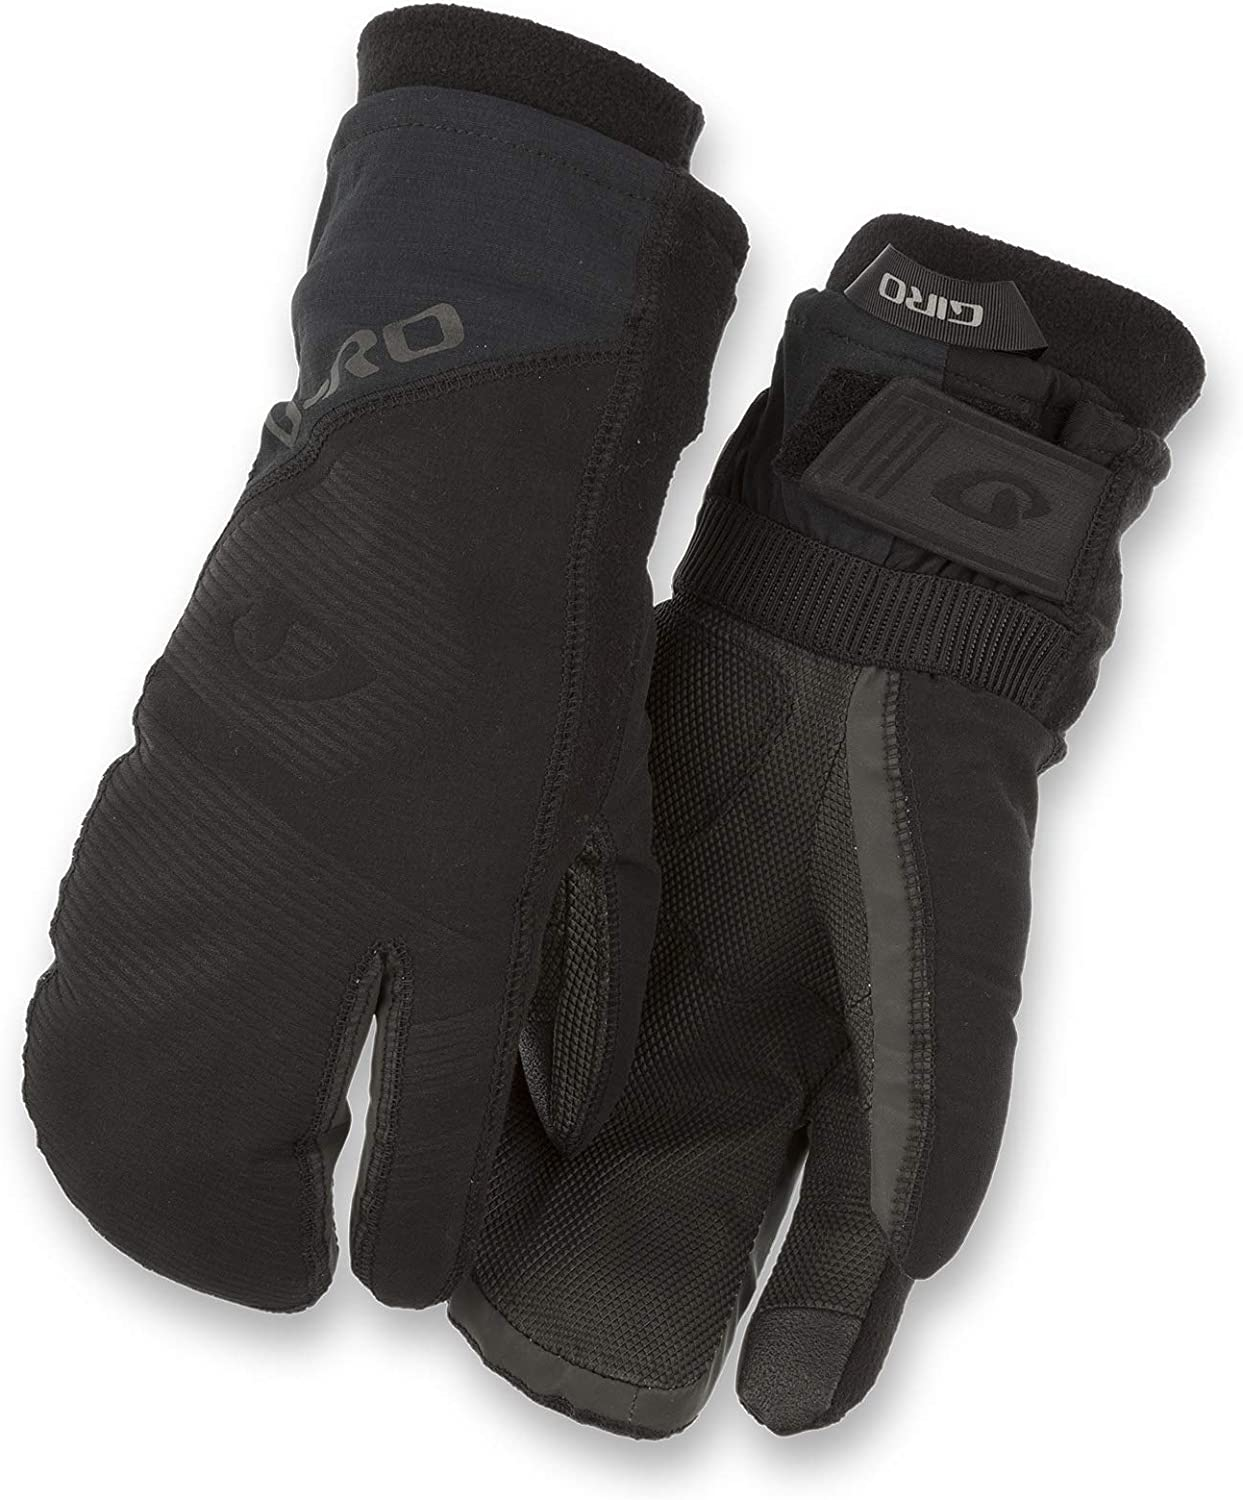 Giro 100 Proof Max 82% OFF Store Adult Cycling Winter Unisex Gloves